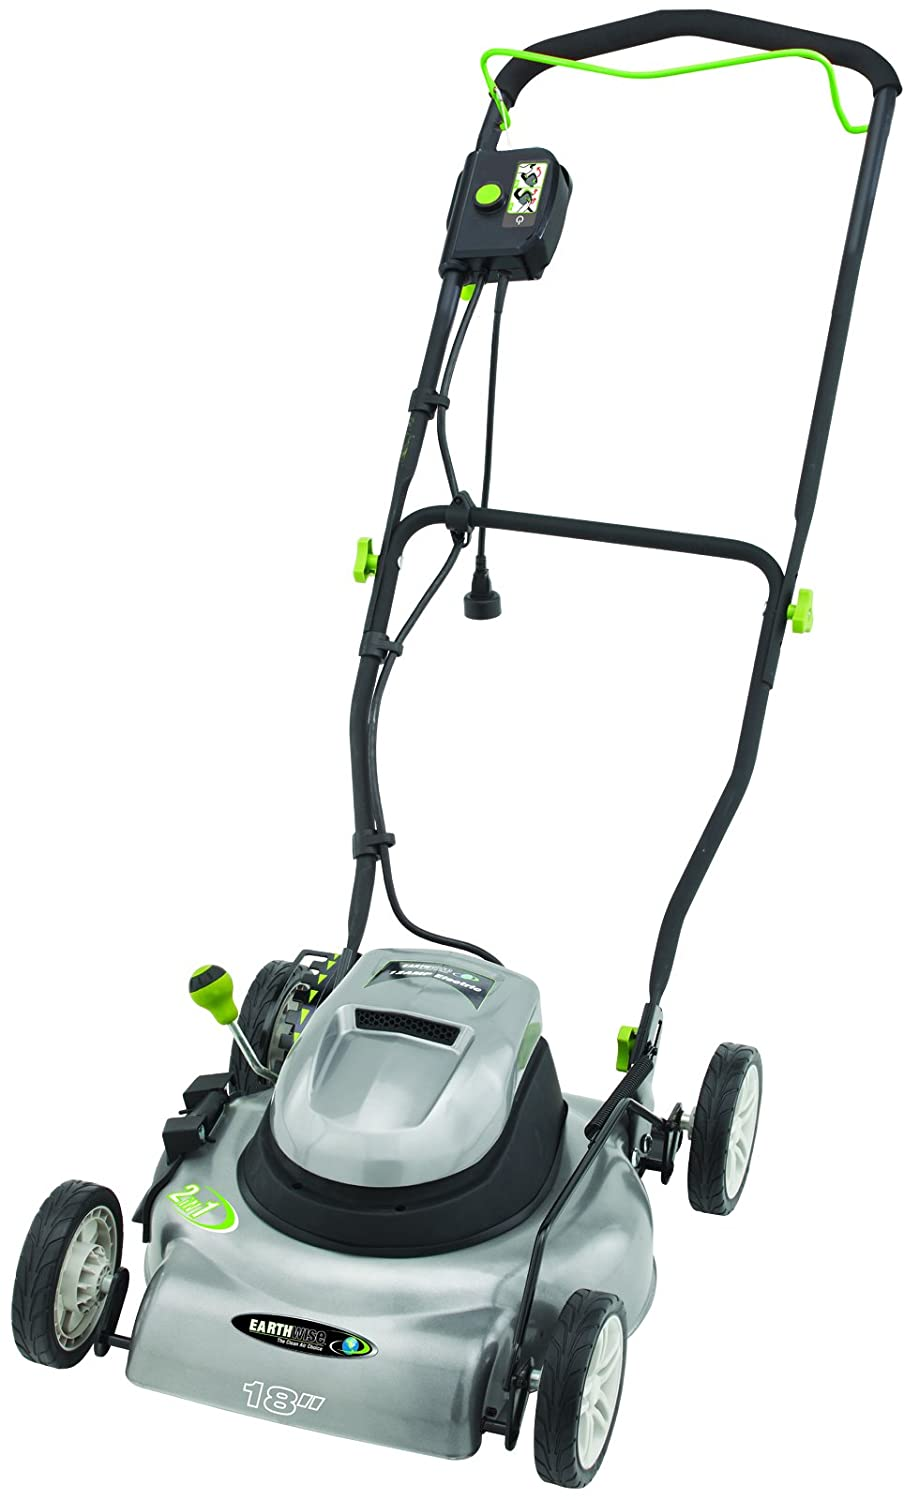 Earthwise 50518 18 Inch Corded Electric Lawn Mower Pressure Washer Wiring Diagrams Garden Outdoor